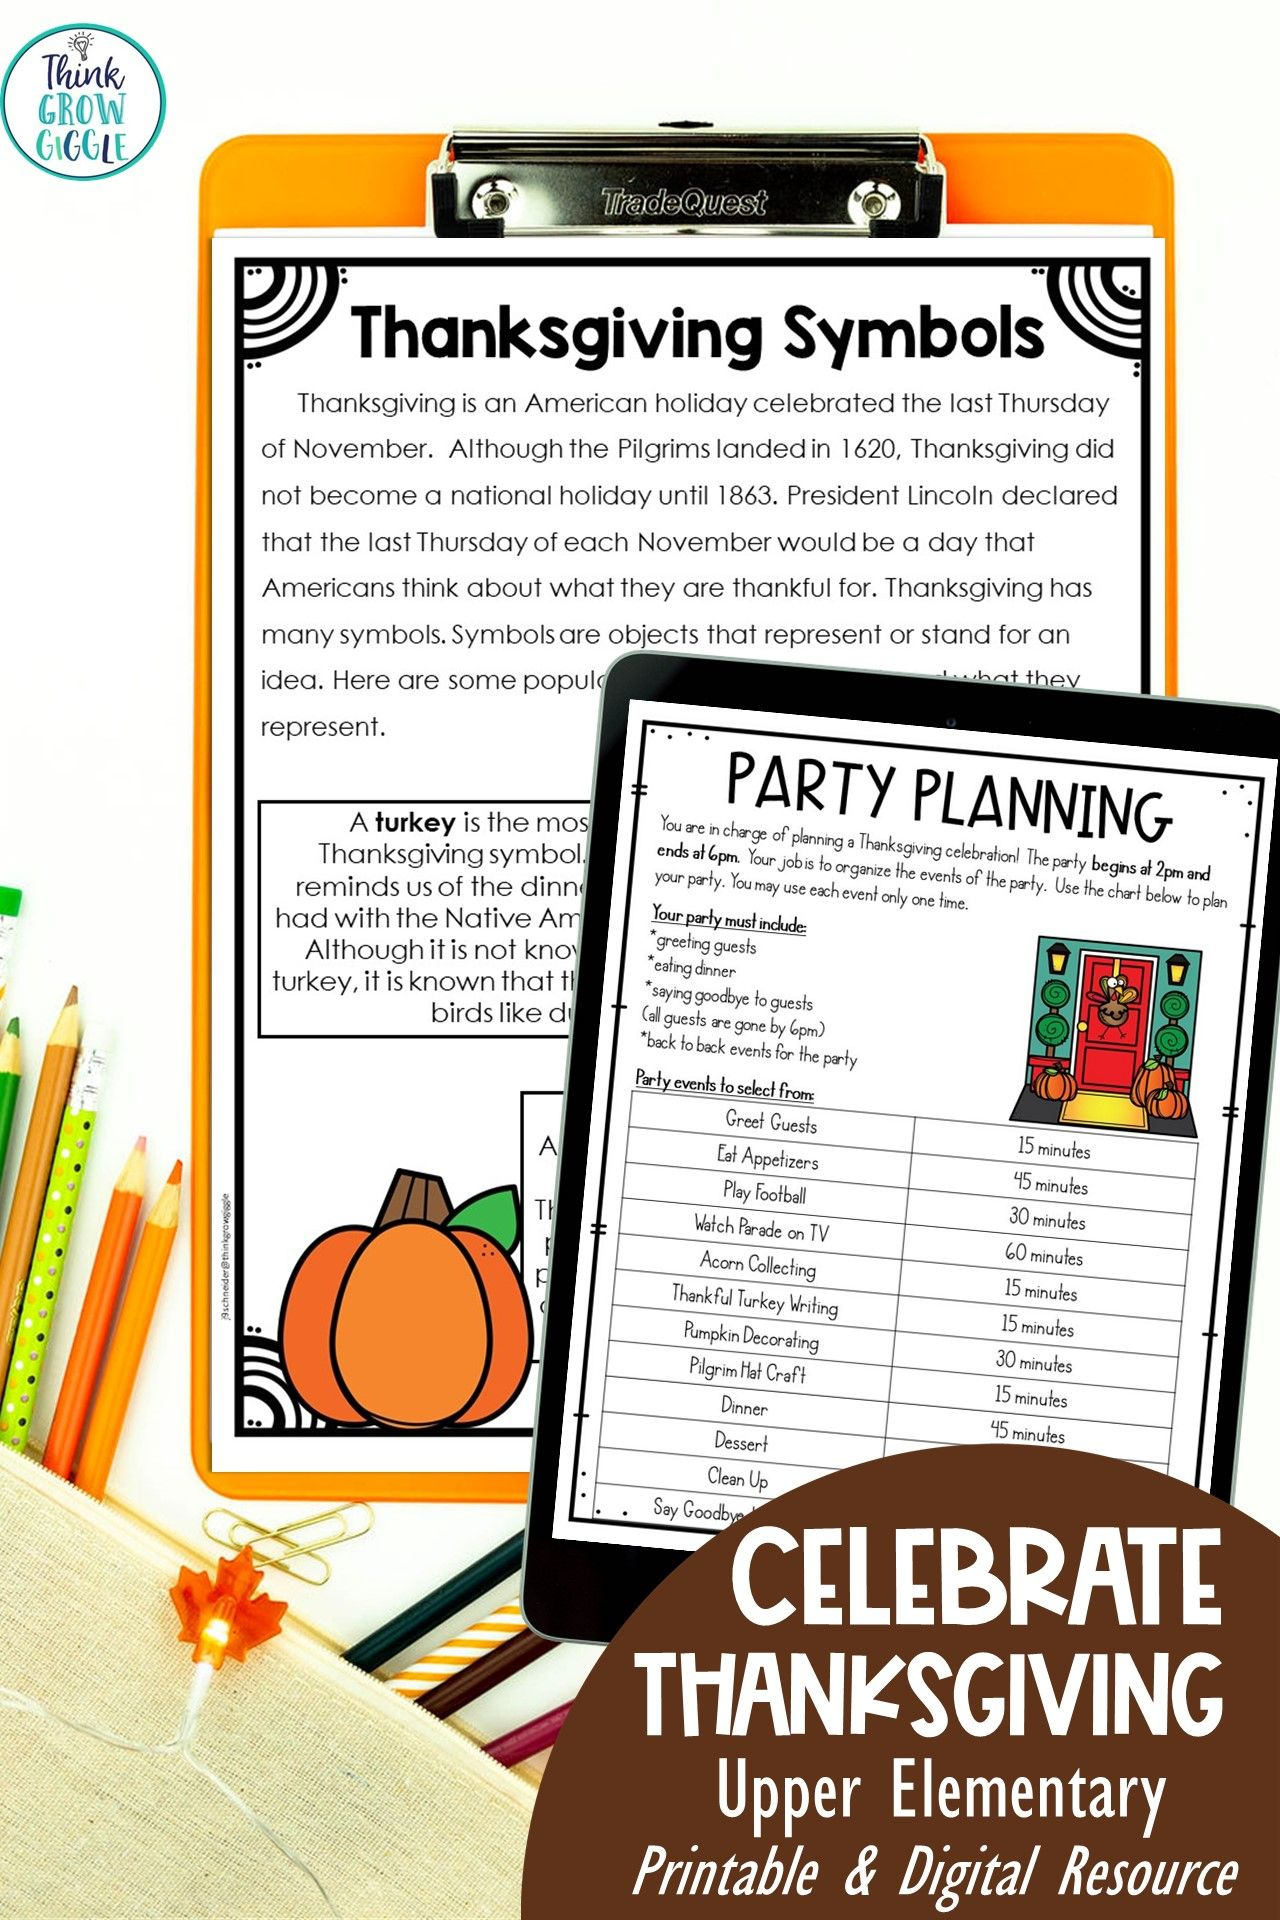 Fun Thanksgiving Activities For Elementary Kids Thanksgiving Reading Comprehension Thanksgiving Reading Passages Thanksgiving Readings [ 1920 x 1280 Pixel ]